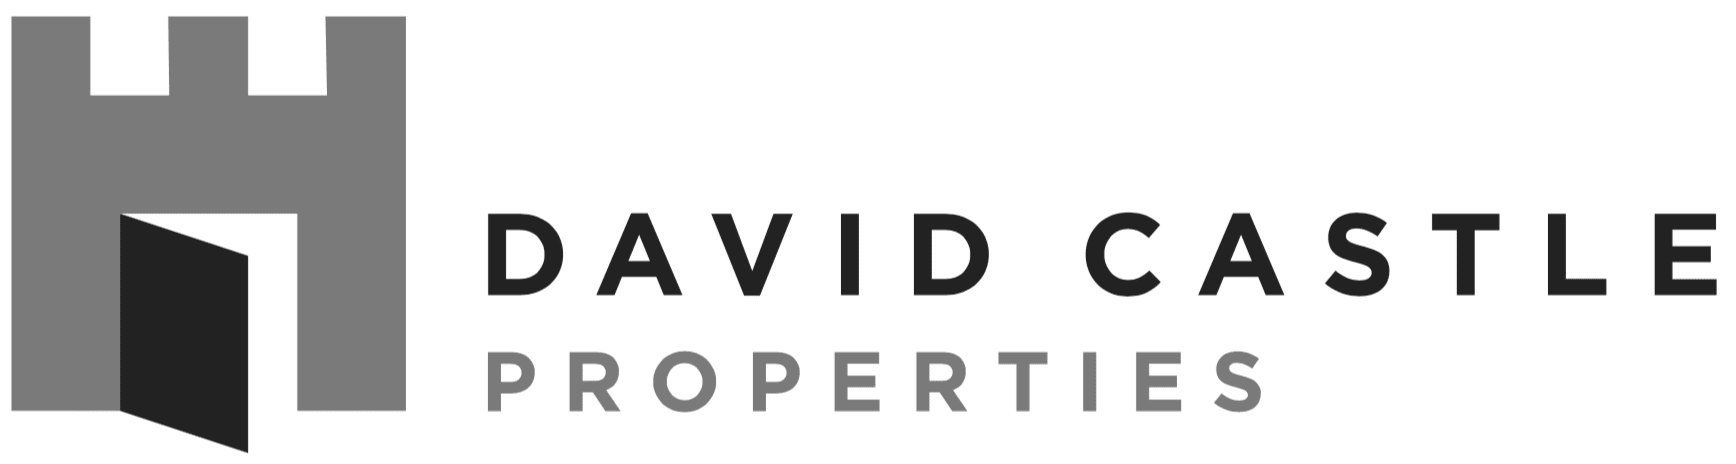 David Castle Properties